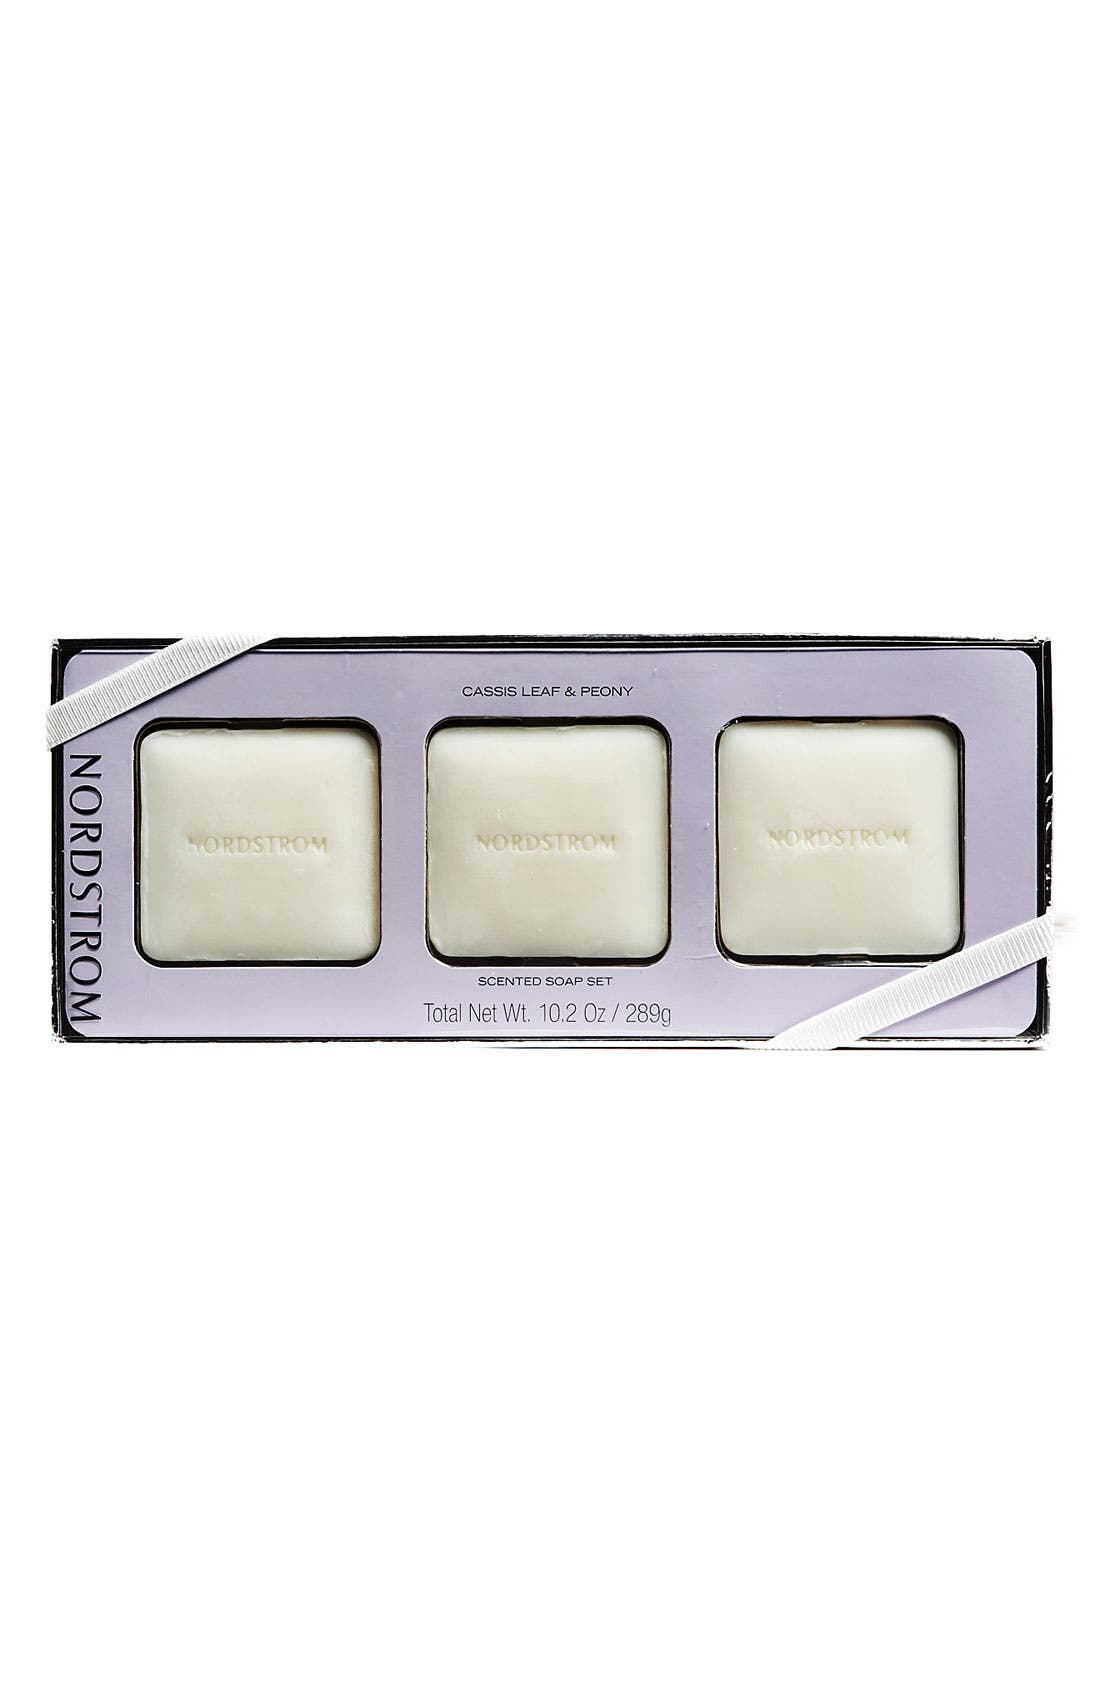 Main Image - Nordstrom 'Cassis Leaf & Peony' Scented Soap Set